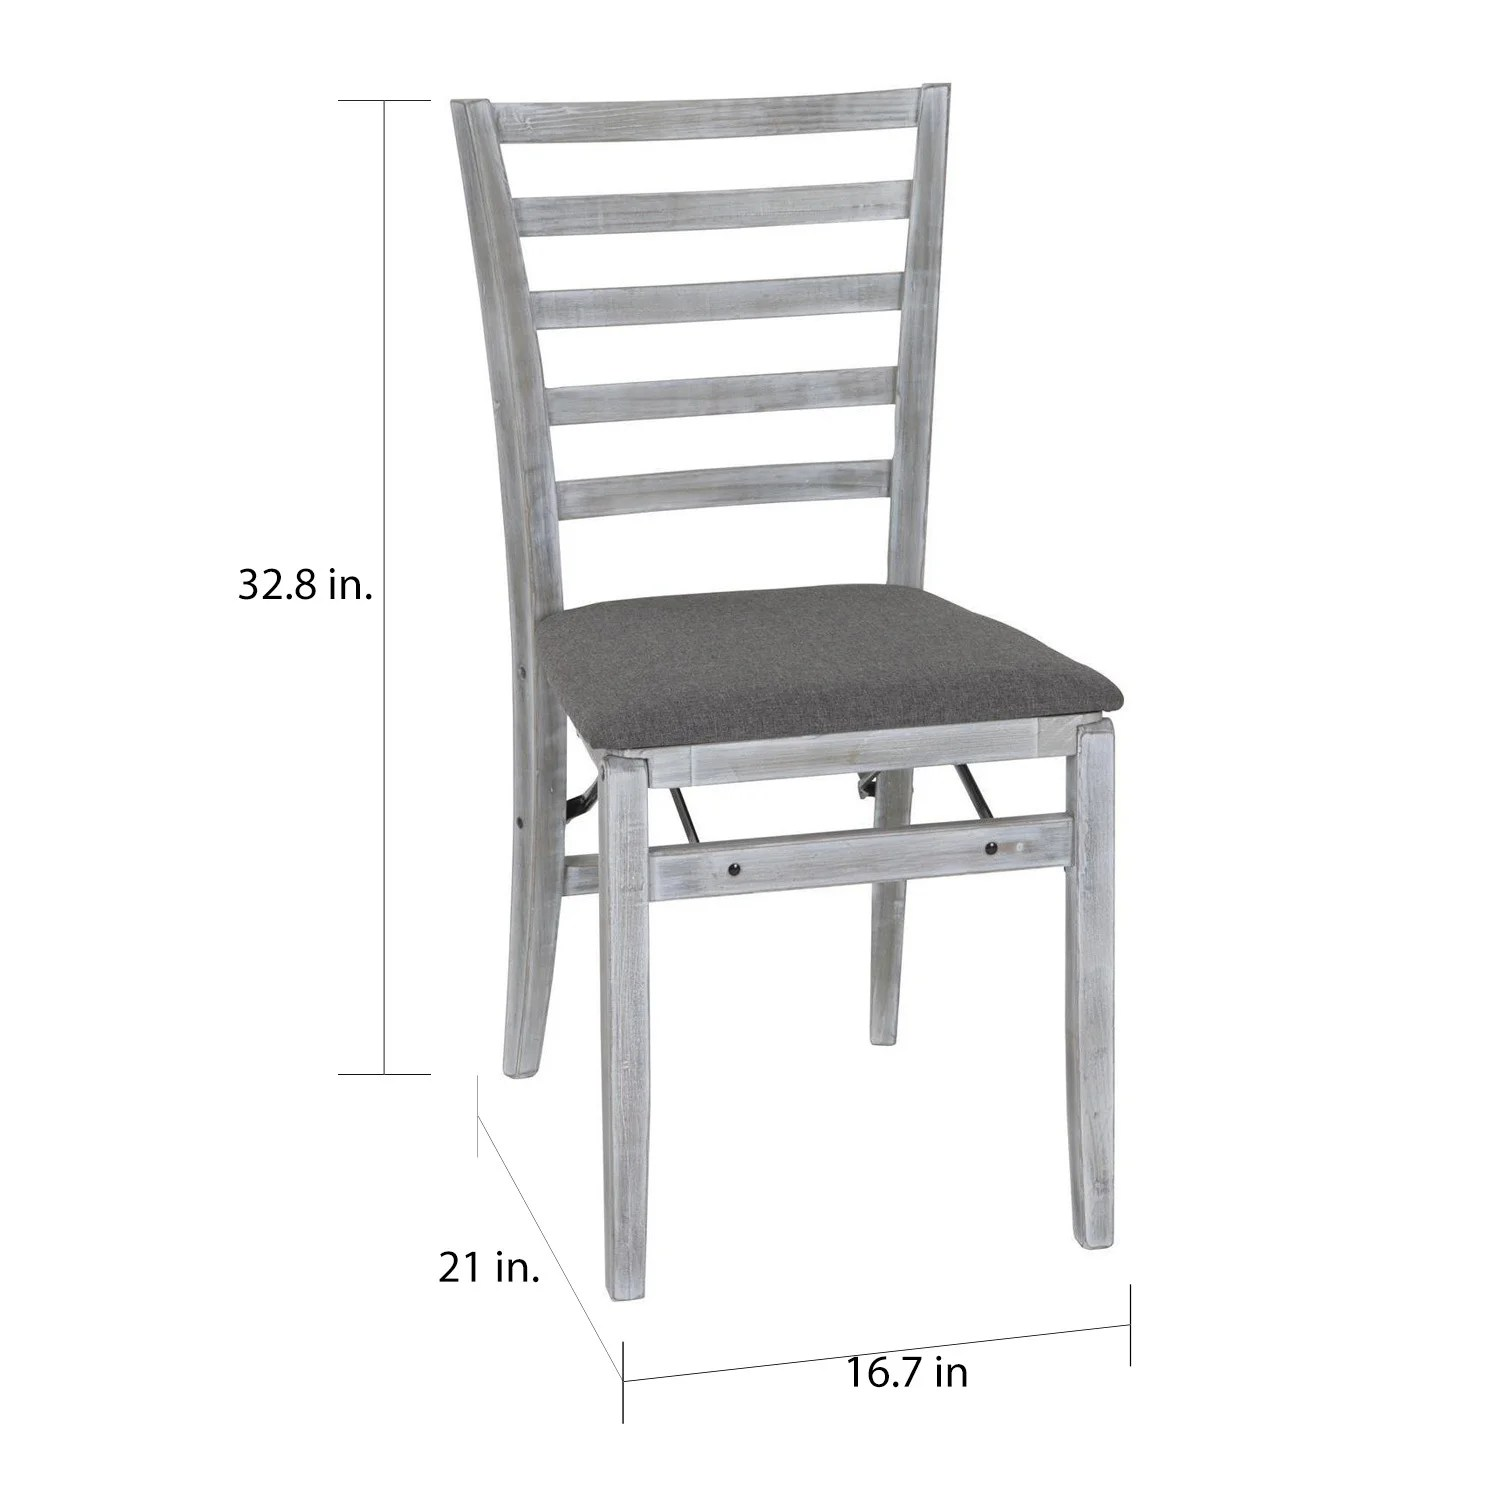 Cosco Folding Chair Cosco White Wash And Grey Wood Folding Chair With Fabric Seat Set Of 2